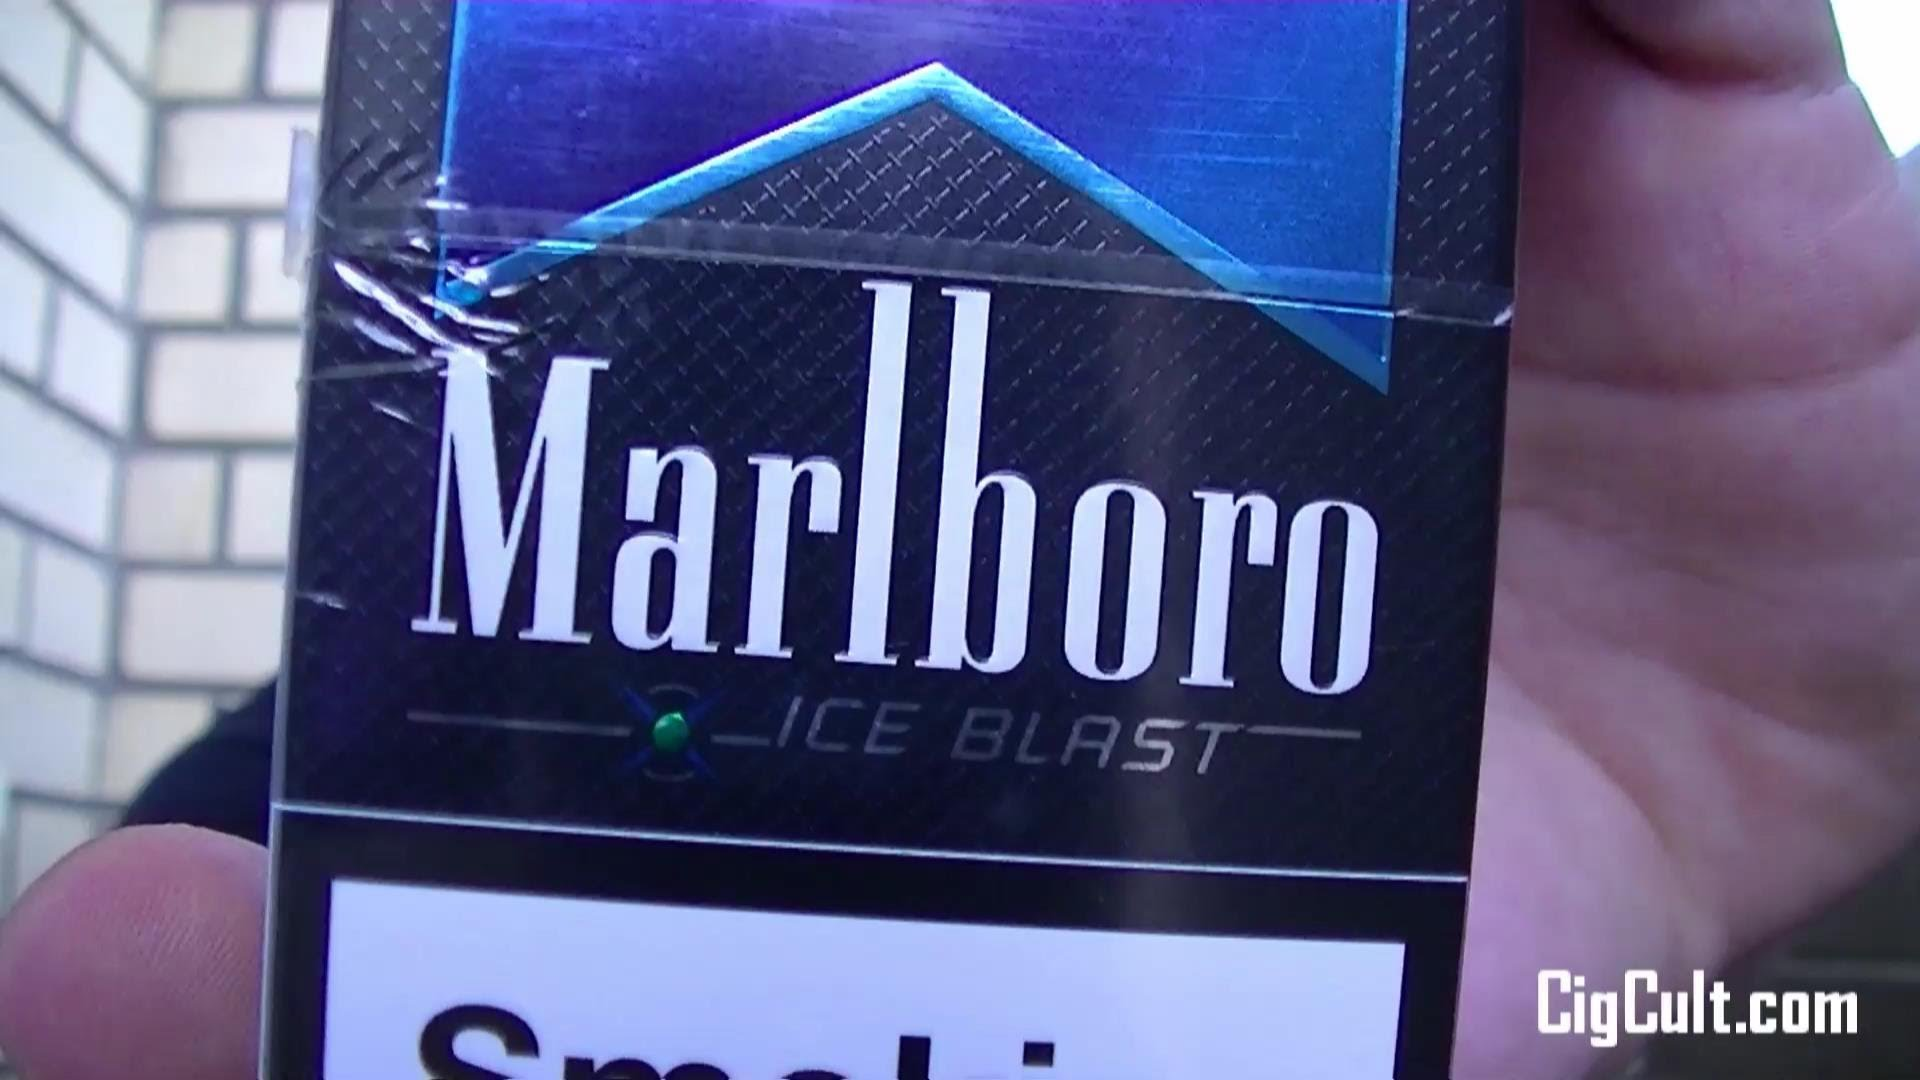 Yellow Iphone Wallpaper Quotes Download Marlboro Ice Blast Wallpaper Gallery